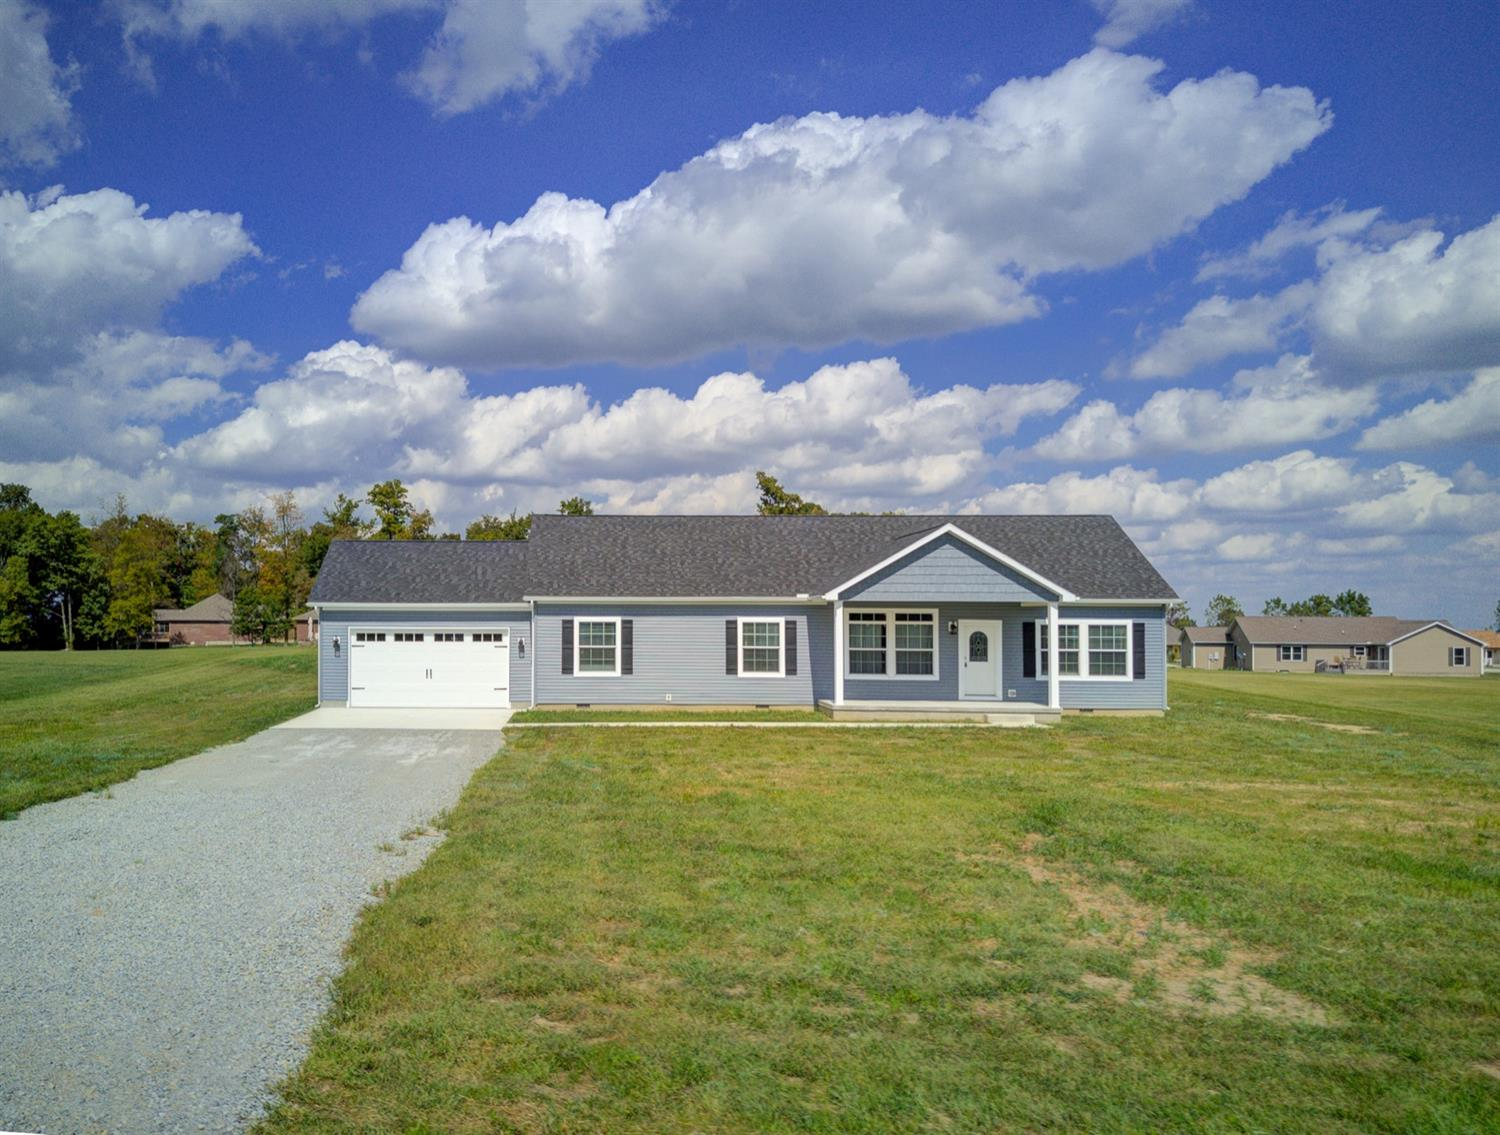 296 Raycon Dr Union Twp. (Clinton), OH